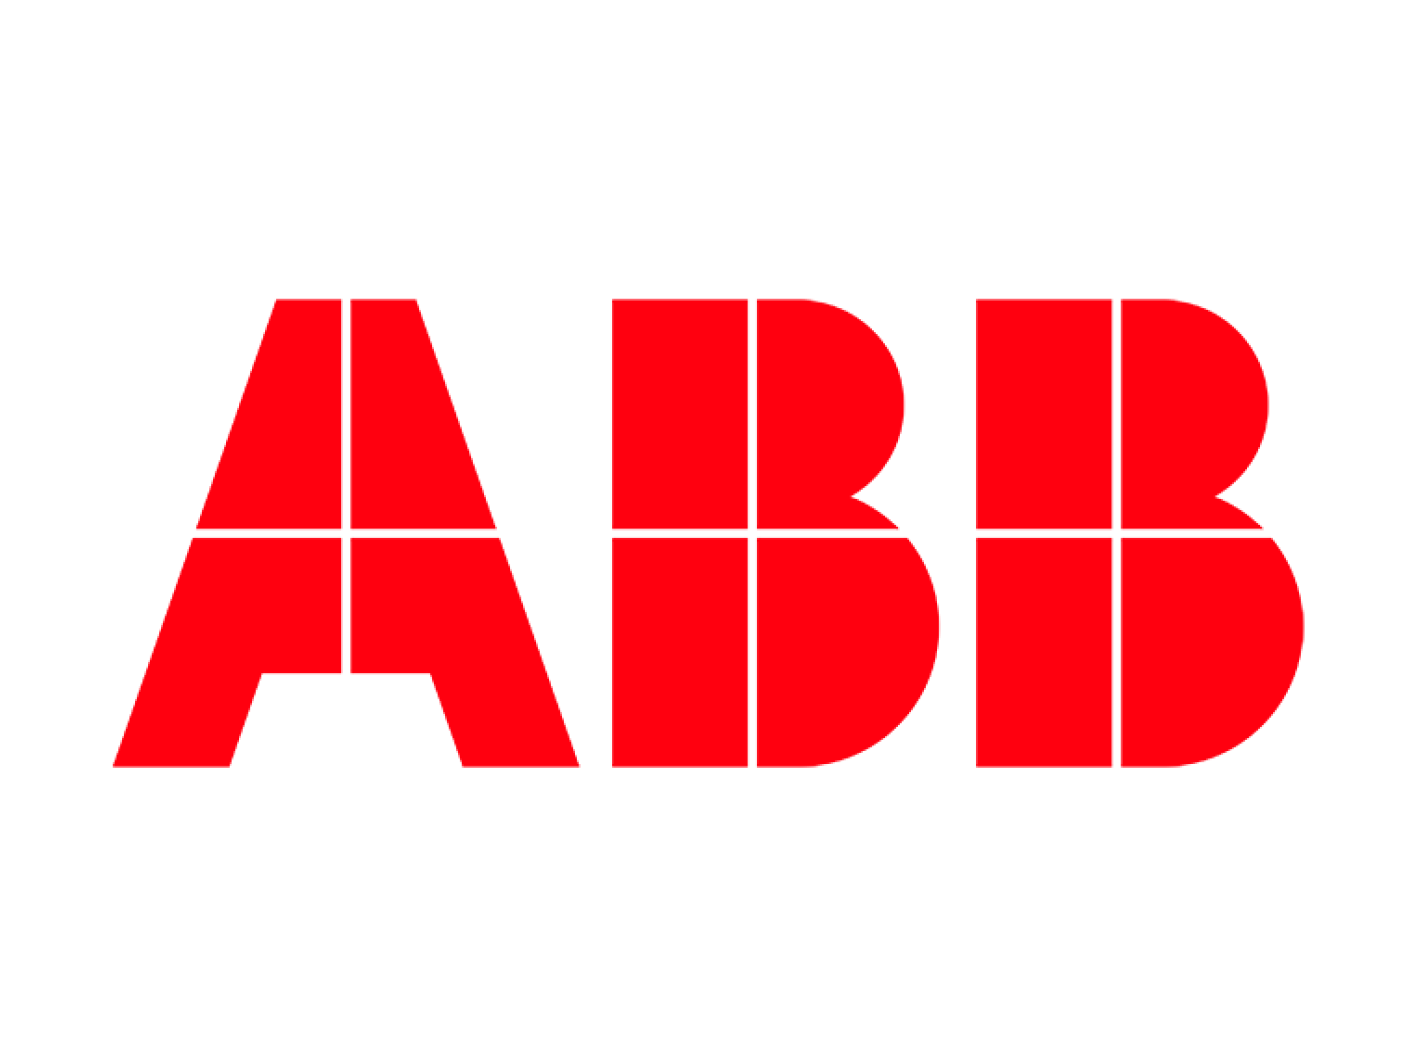 ABB unveils cutting edge factory in India to double its solar inverter manufacturing output